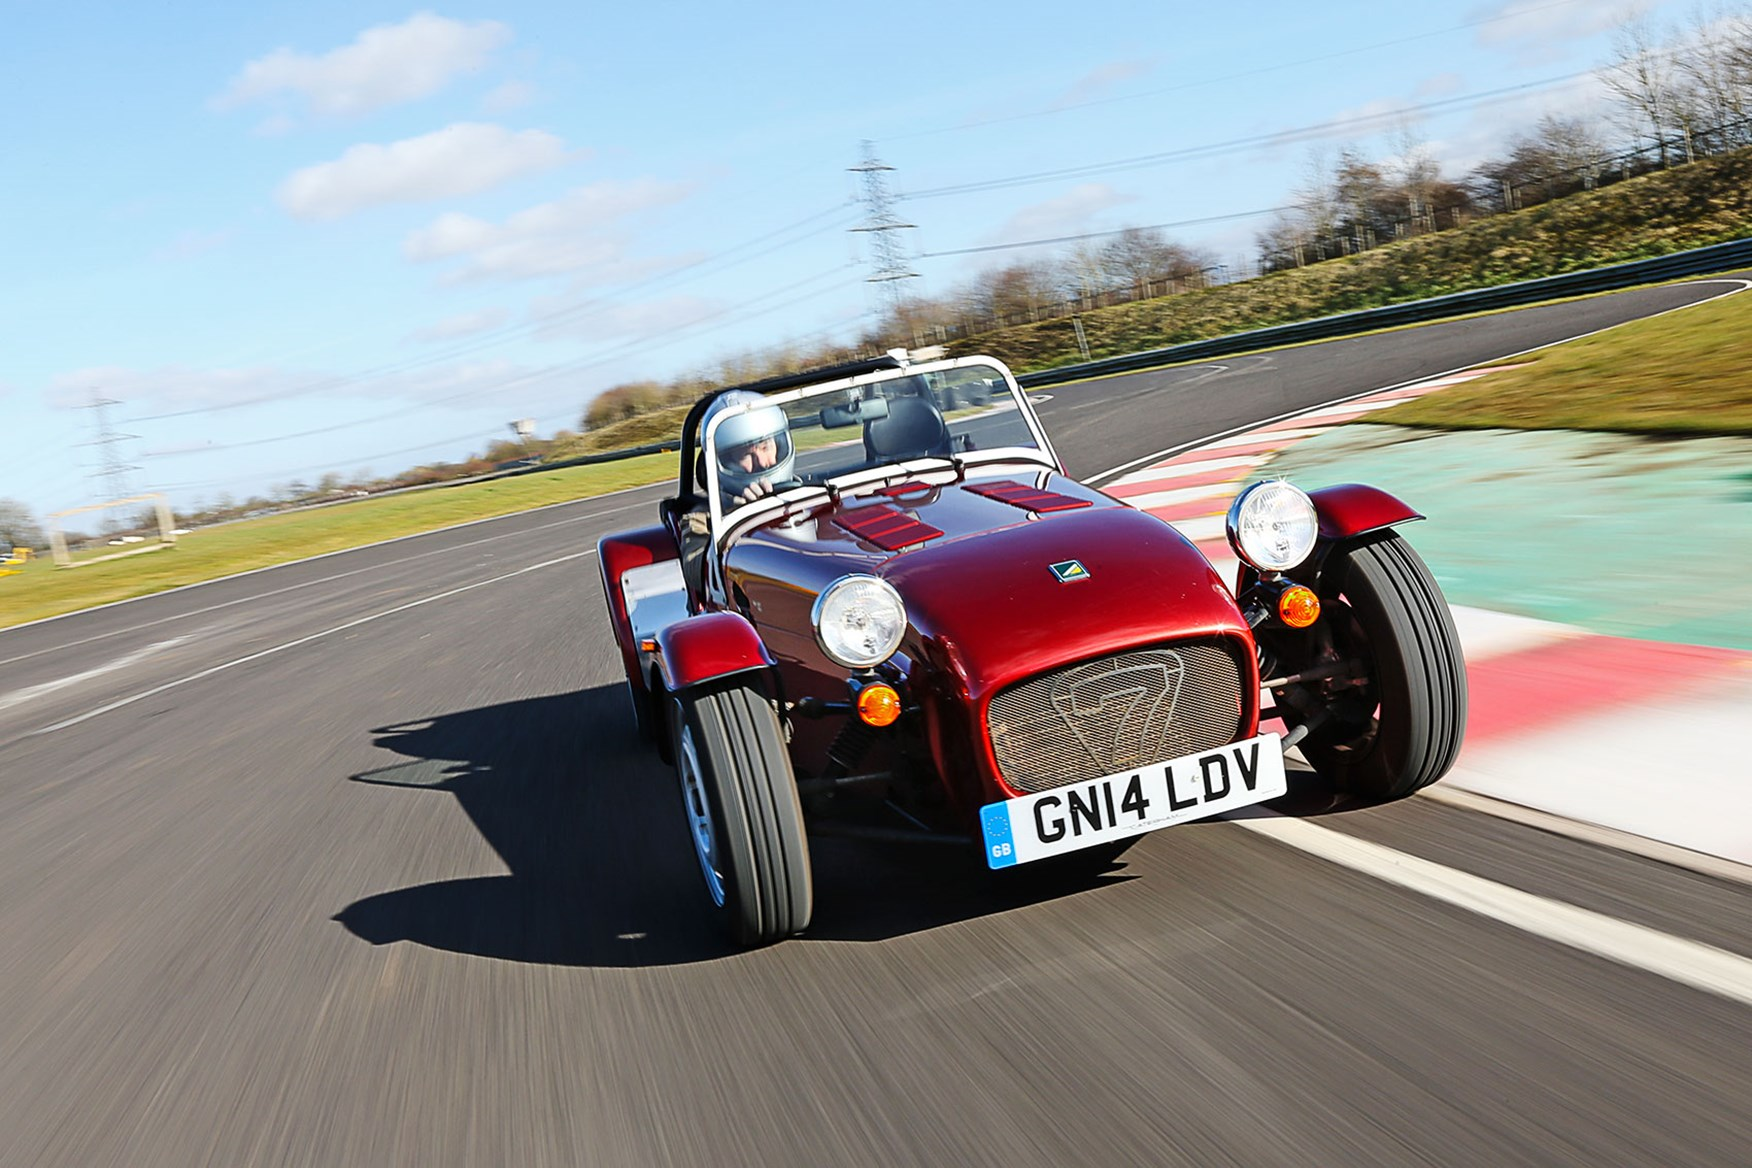 038_caterham?mode=max&quality=90&scale=down caterham seven 160 (2014) long term test review by car magazine caterham 7 wiring diagram at webbmarketing.co